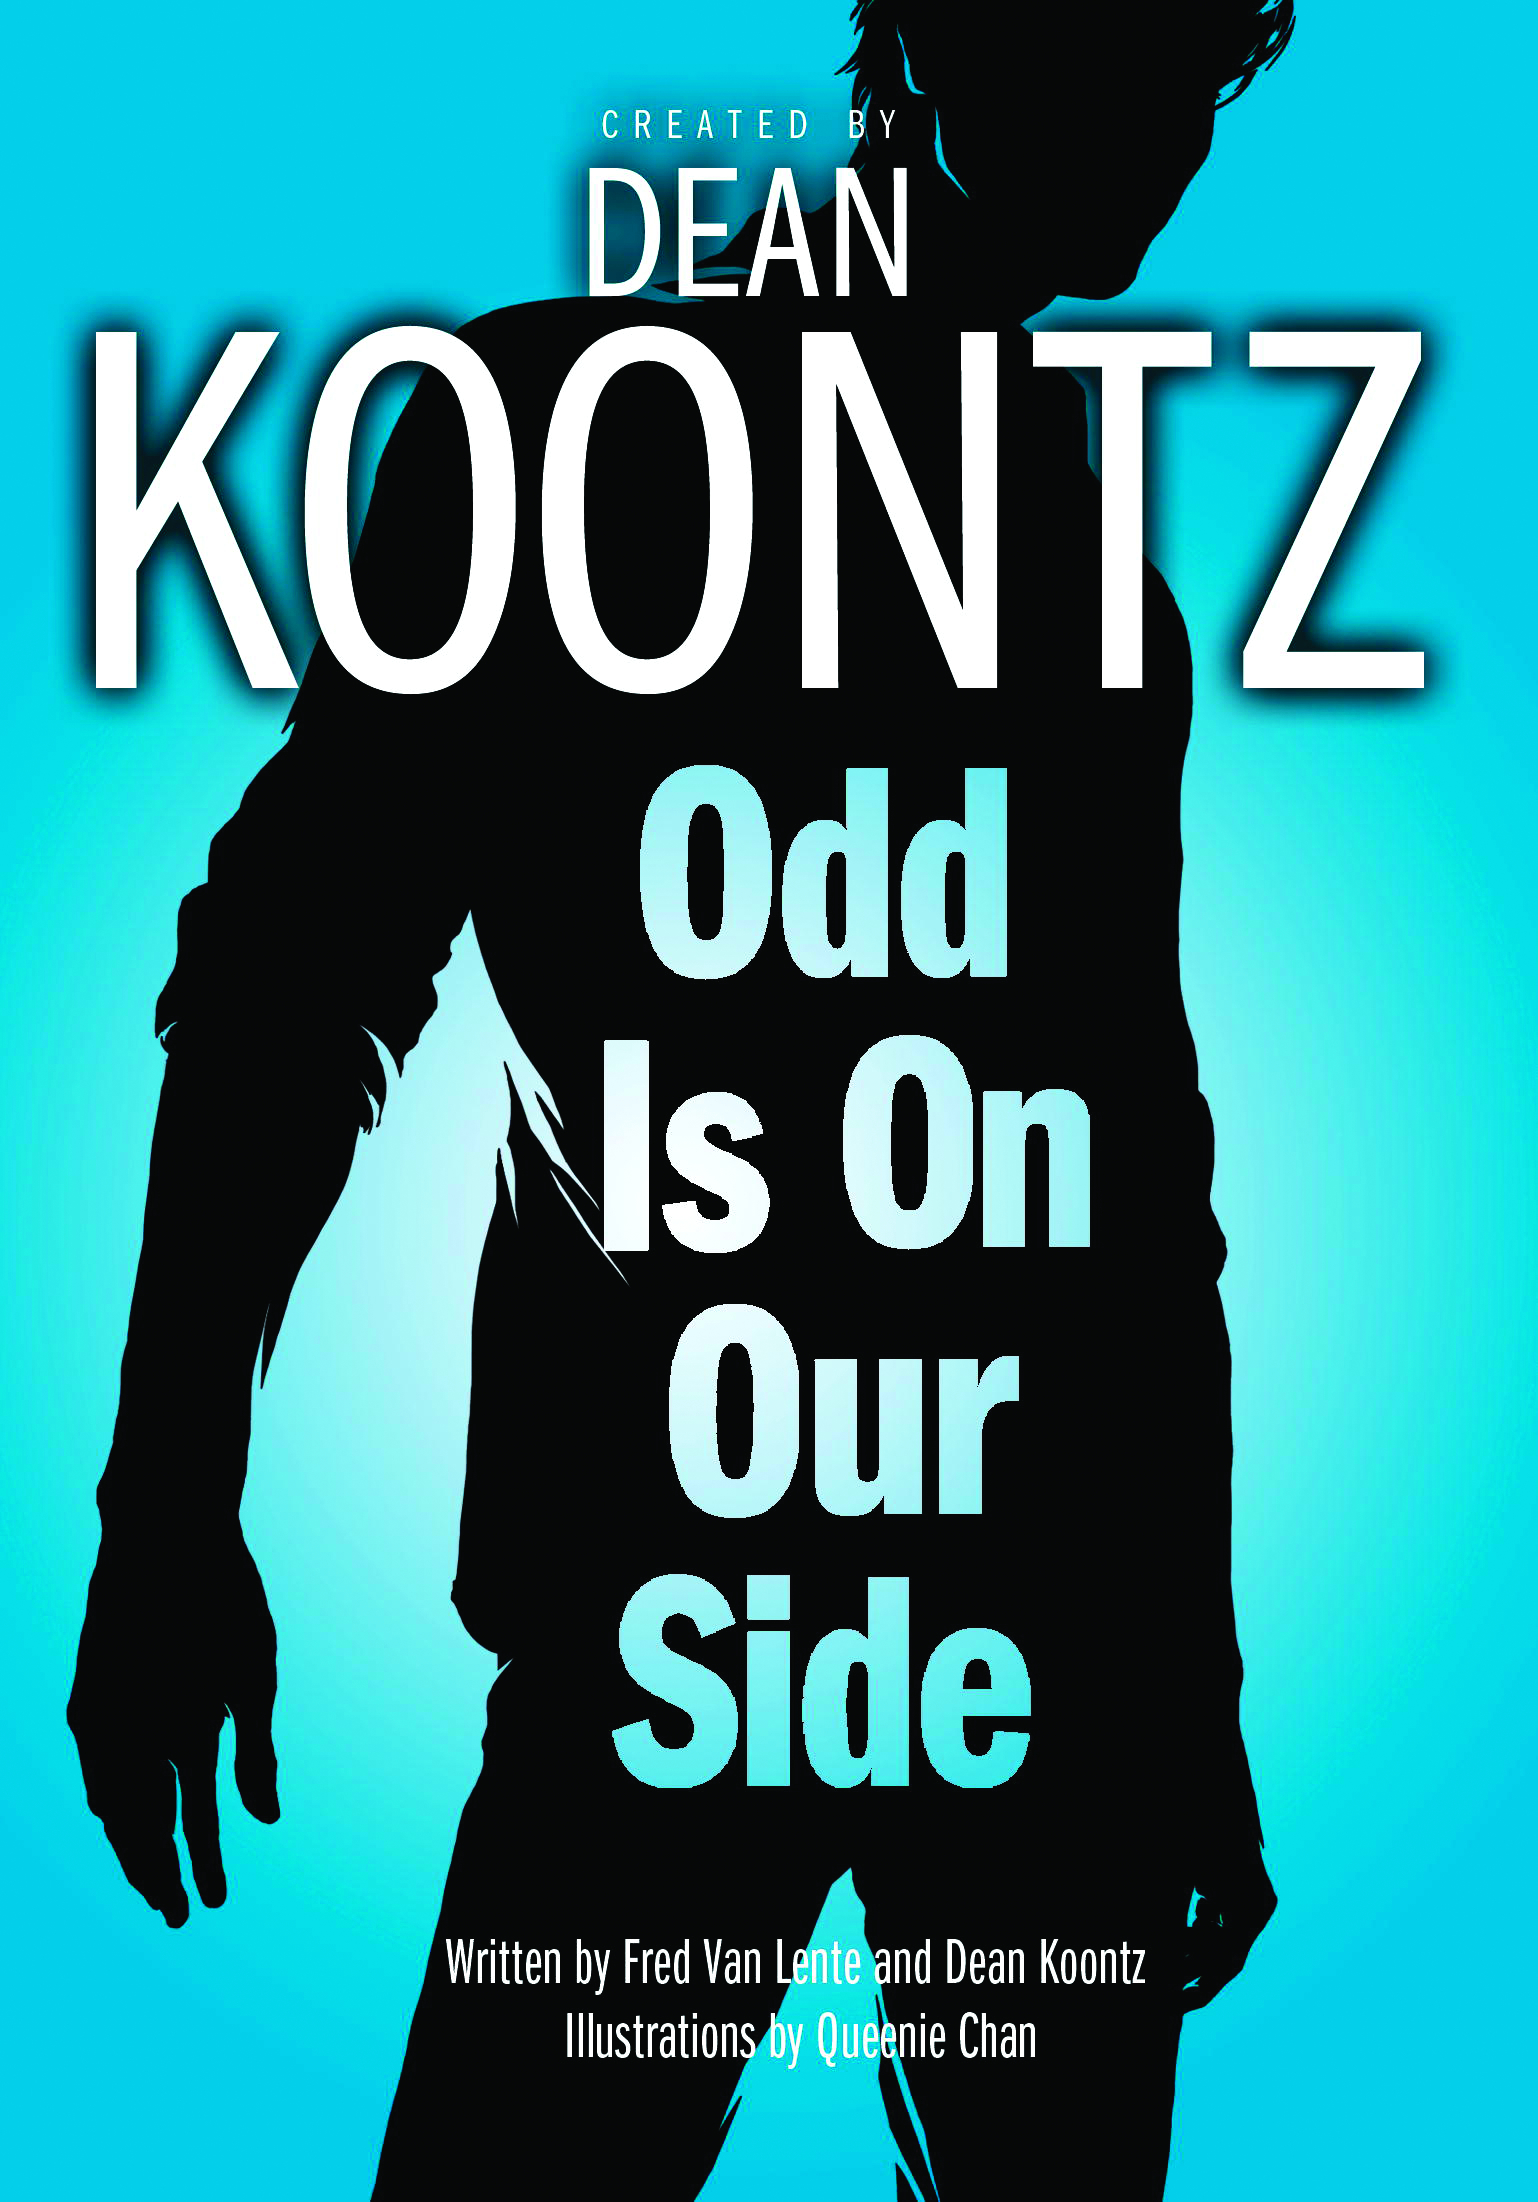 DEAN KOONTZ ODD IS ON OUR SIDE GN